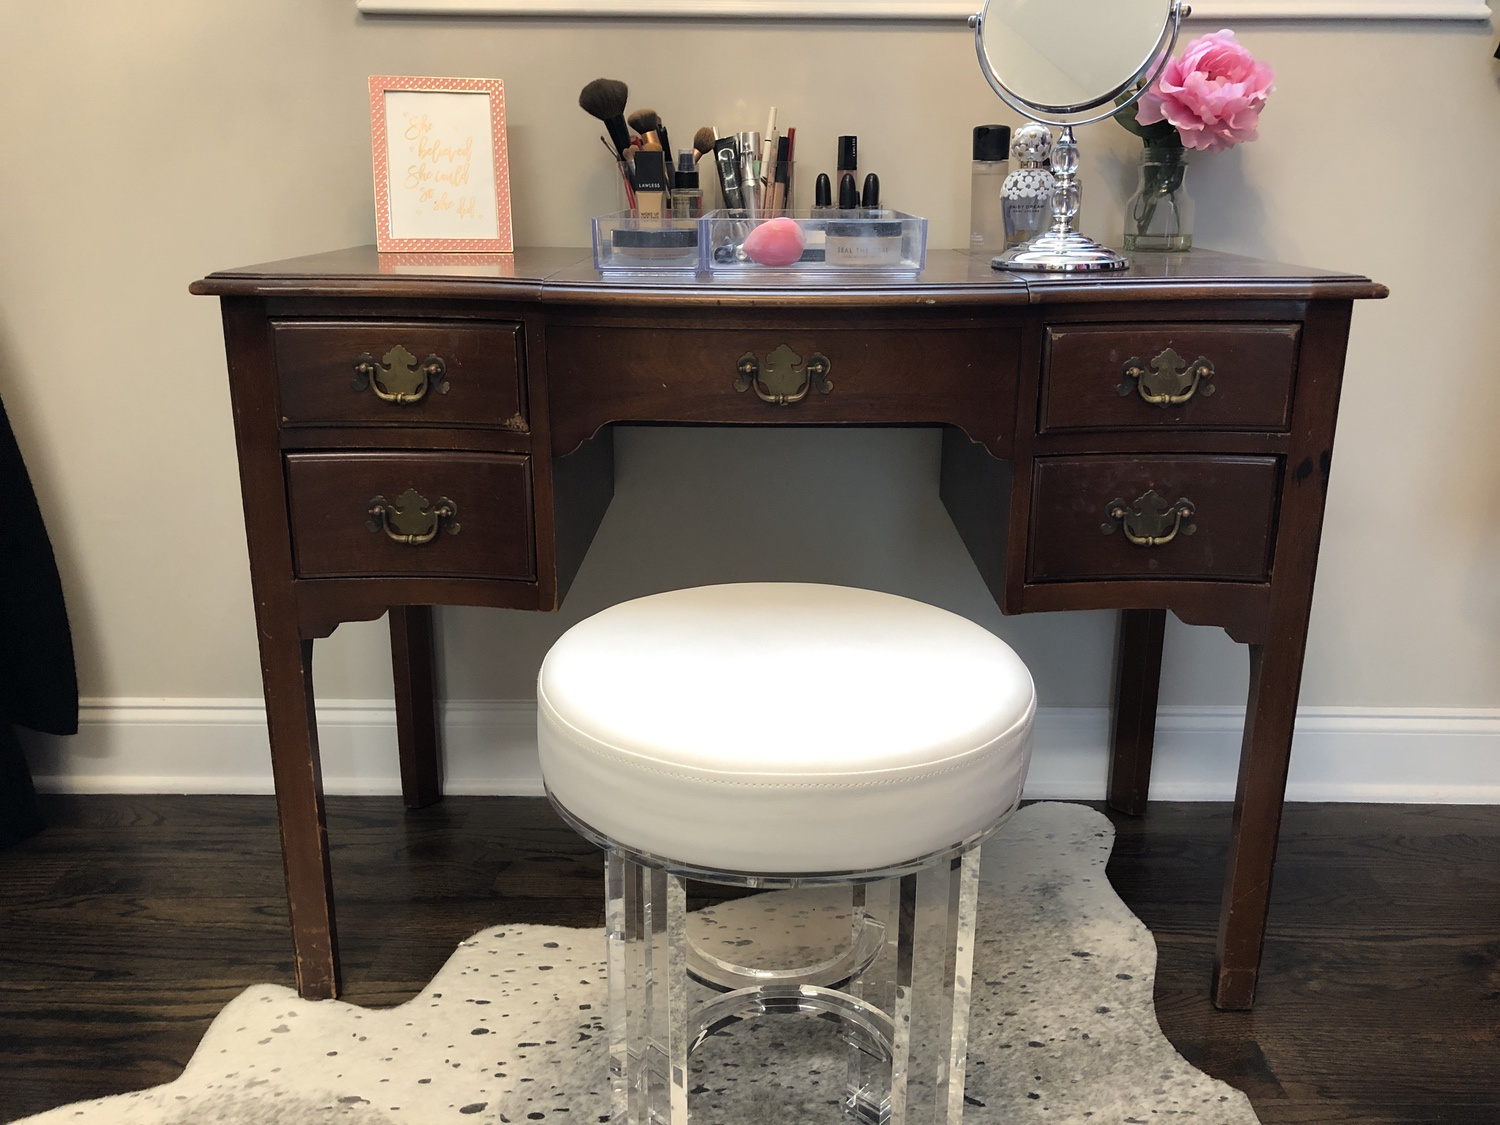 How To Paint Furniture Antique Vanity Makeover Annie Spano